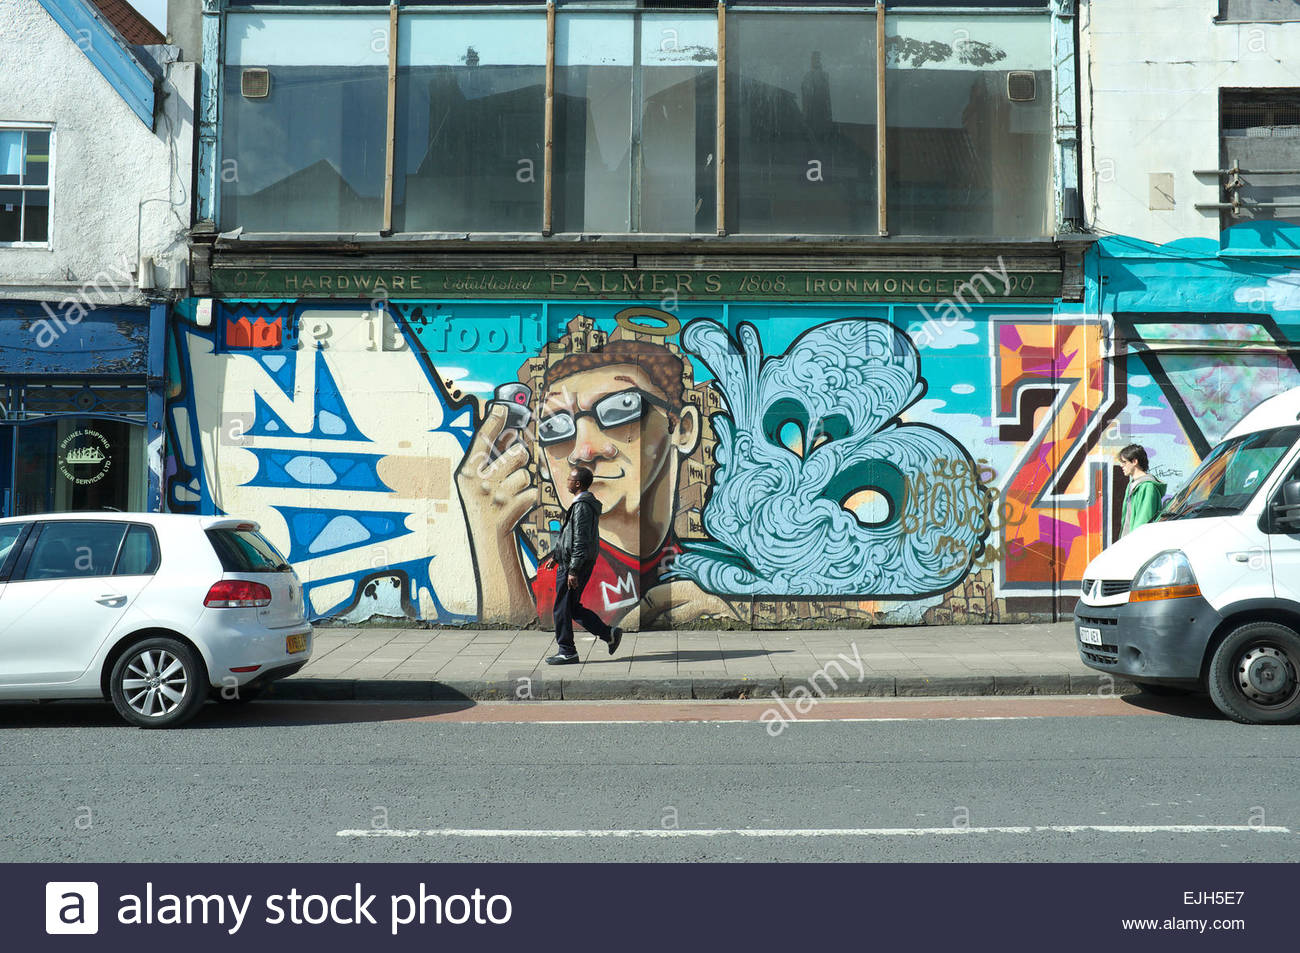 Stokes Croft - a pedestrian strolls pass a former hardware store, now covered in street art, in Stokes Croft, Bristol, - Stock Image